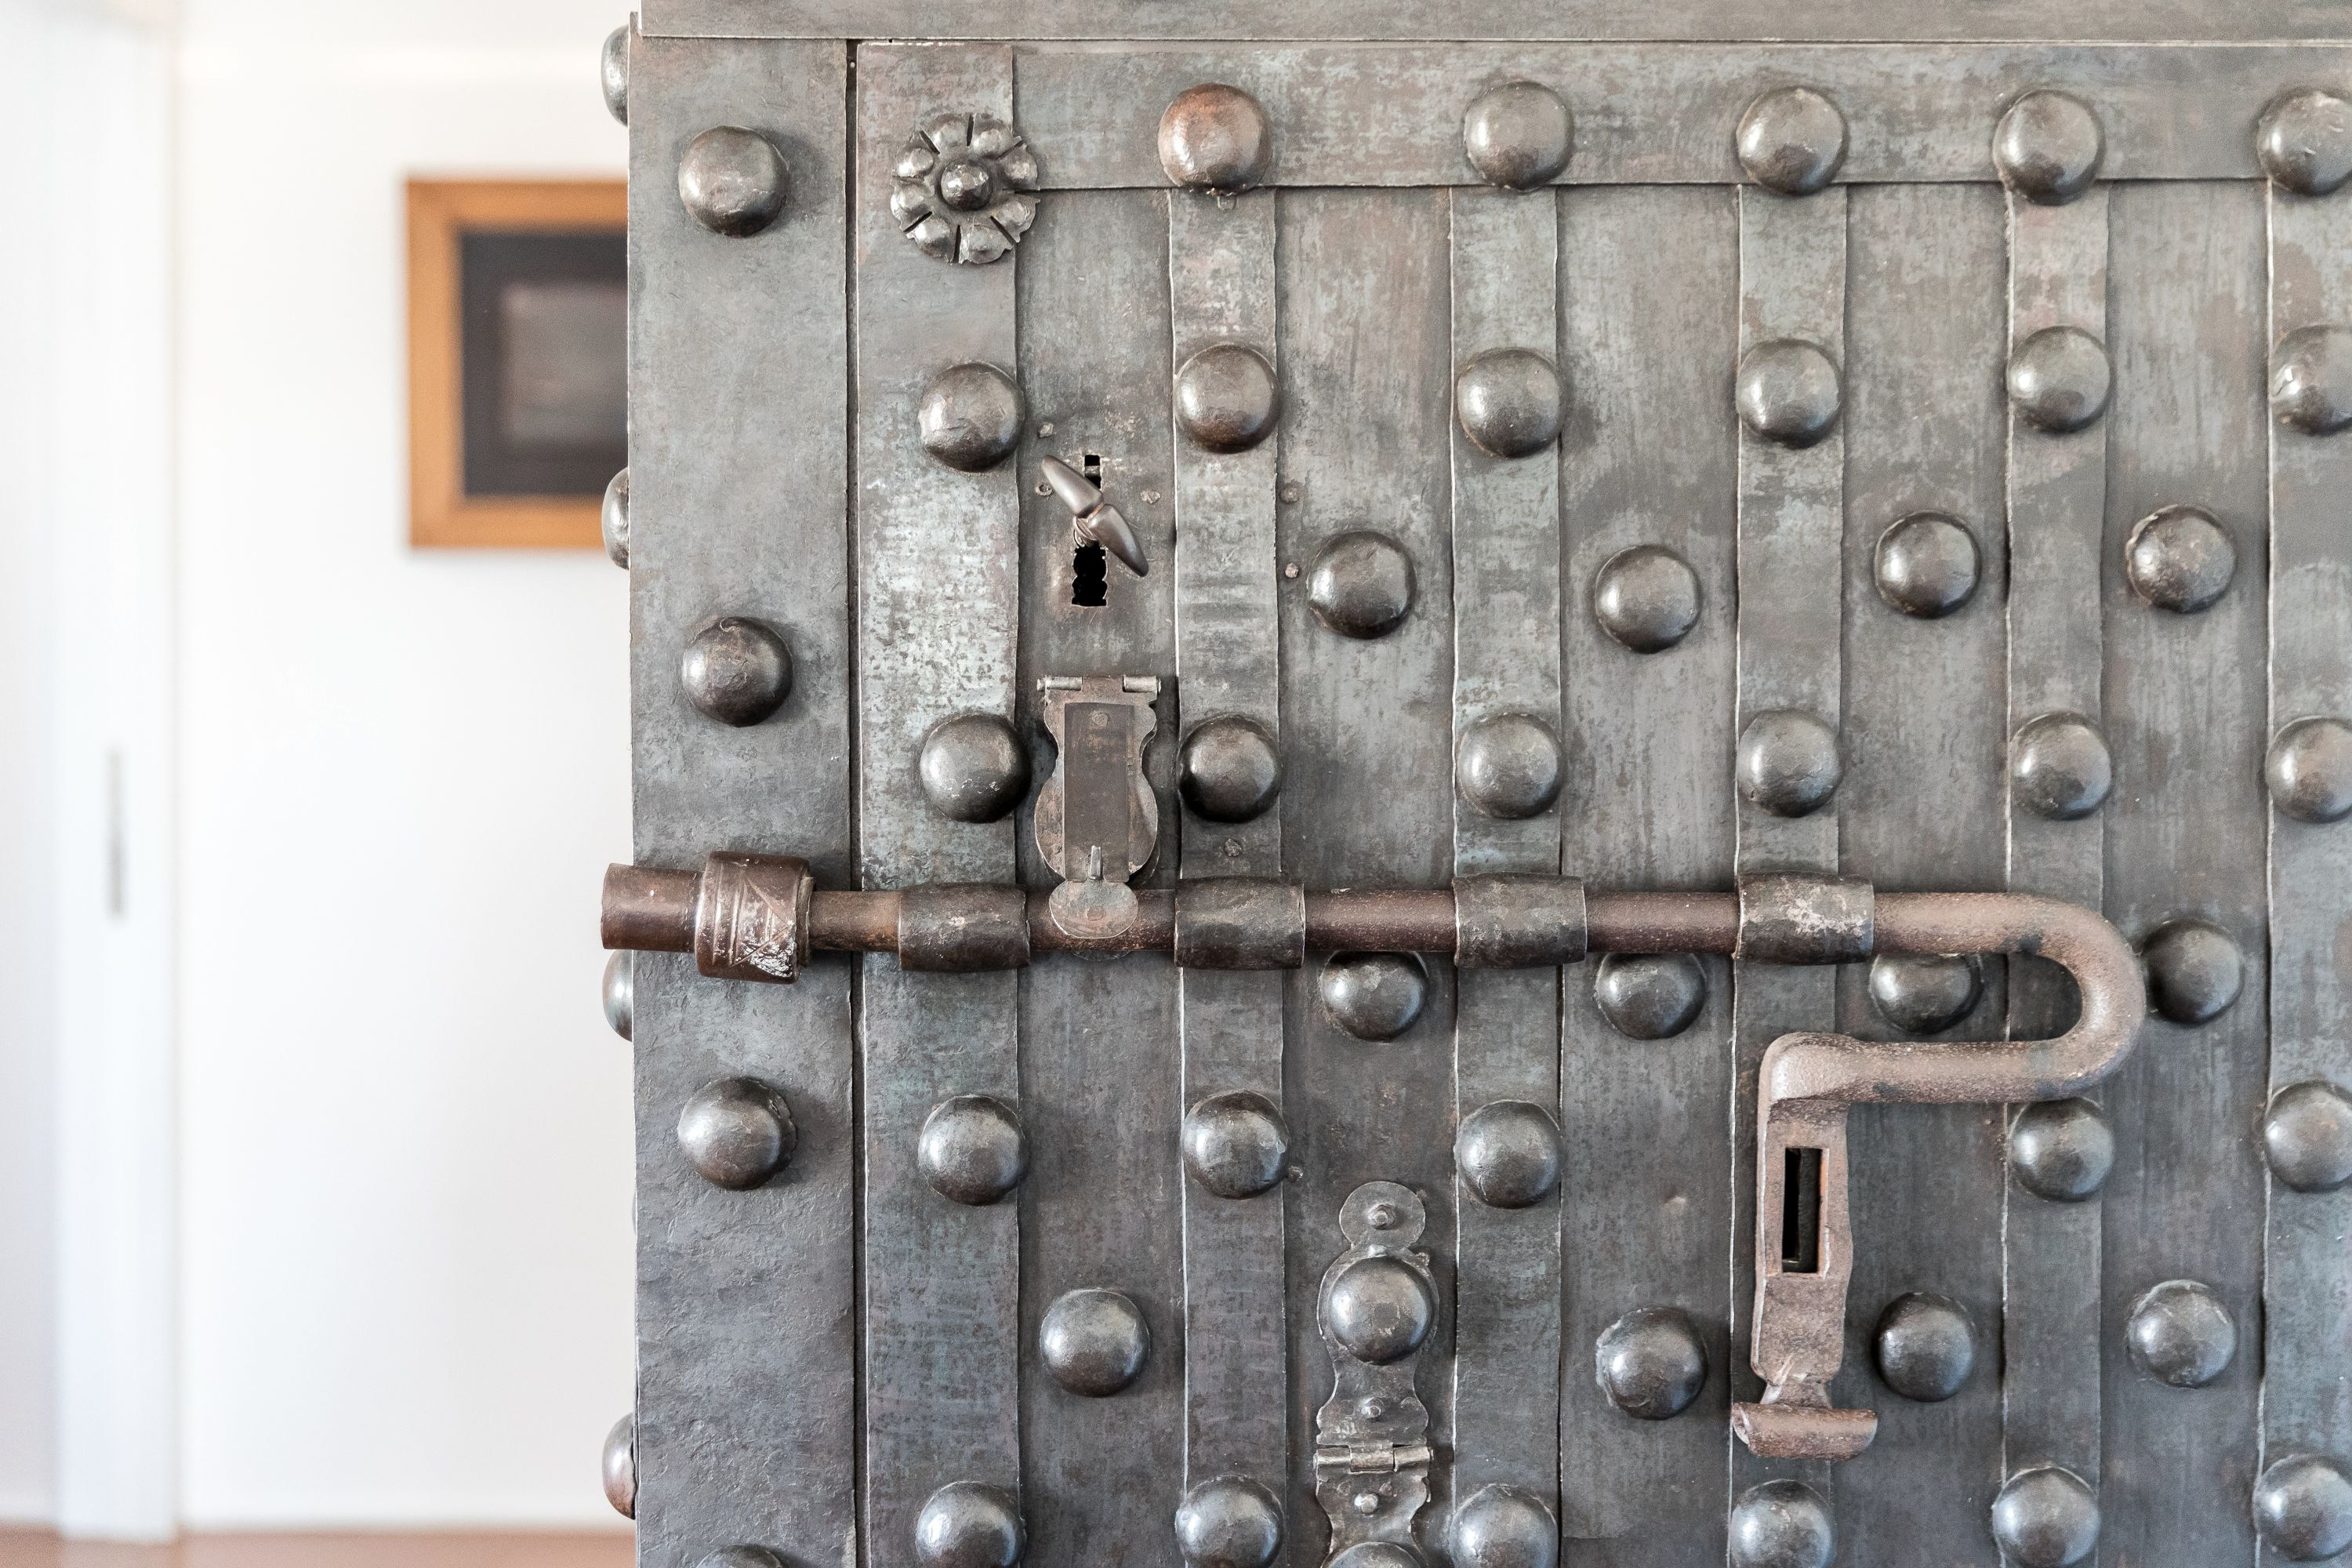 the antique safe is a real masterpiece